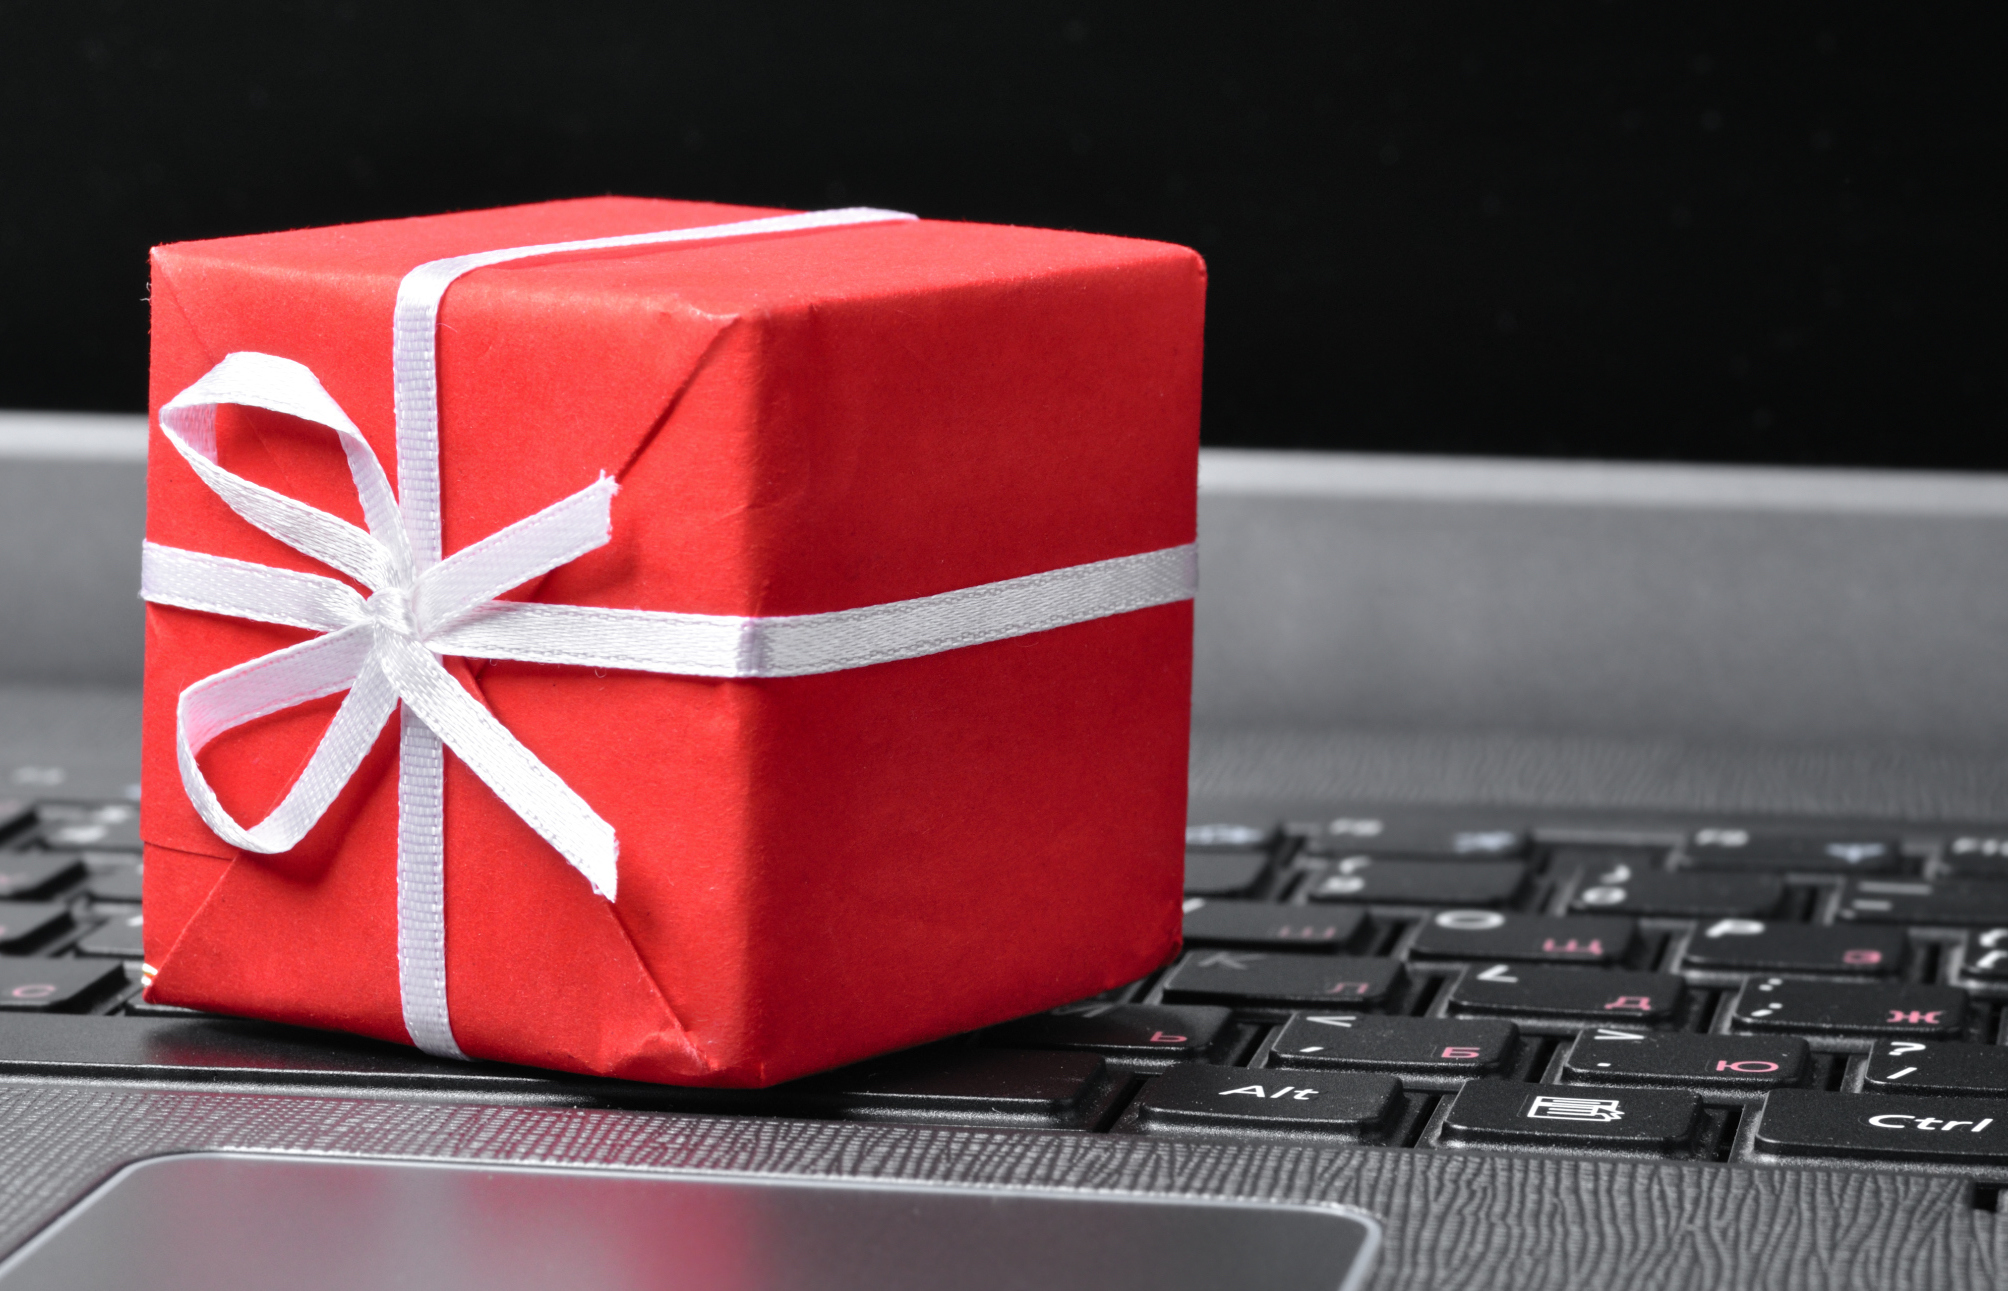 red gift box on a laptop keyboard